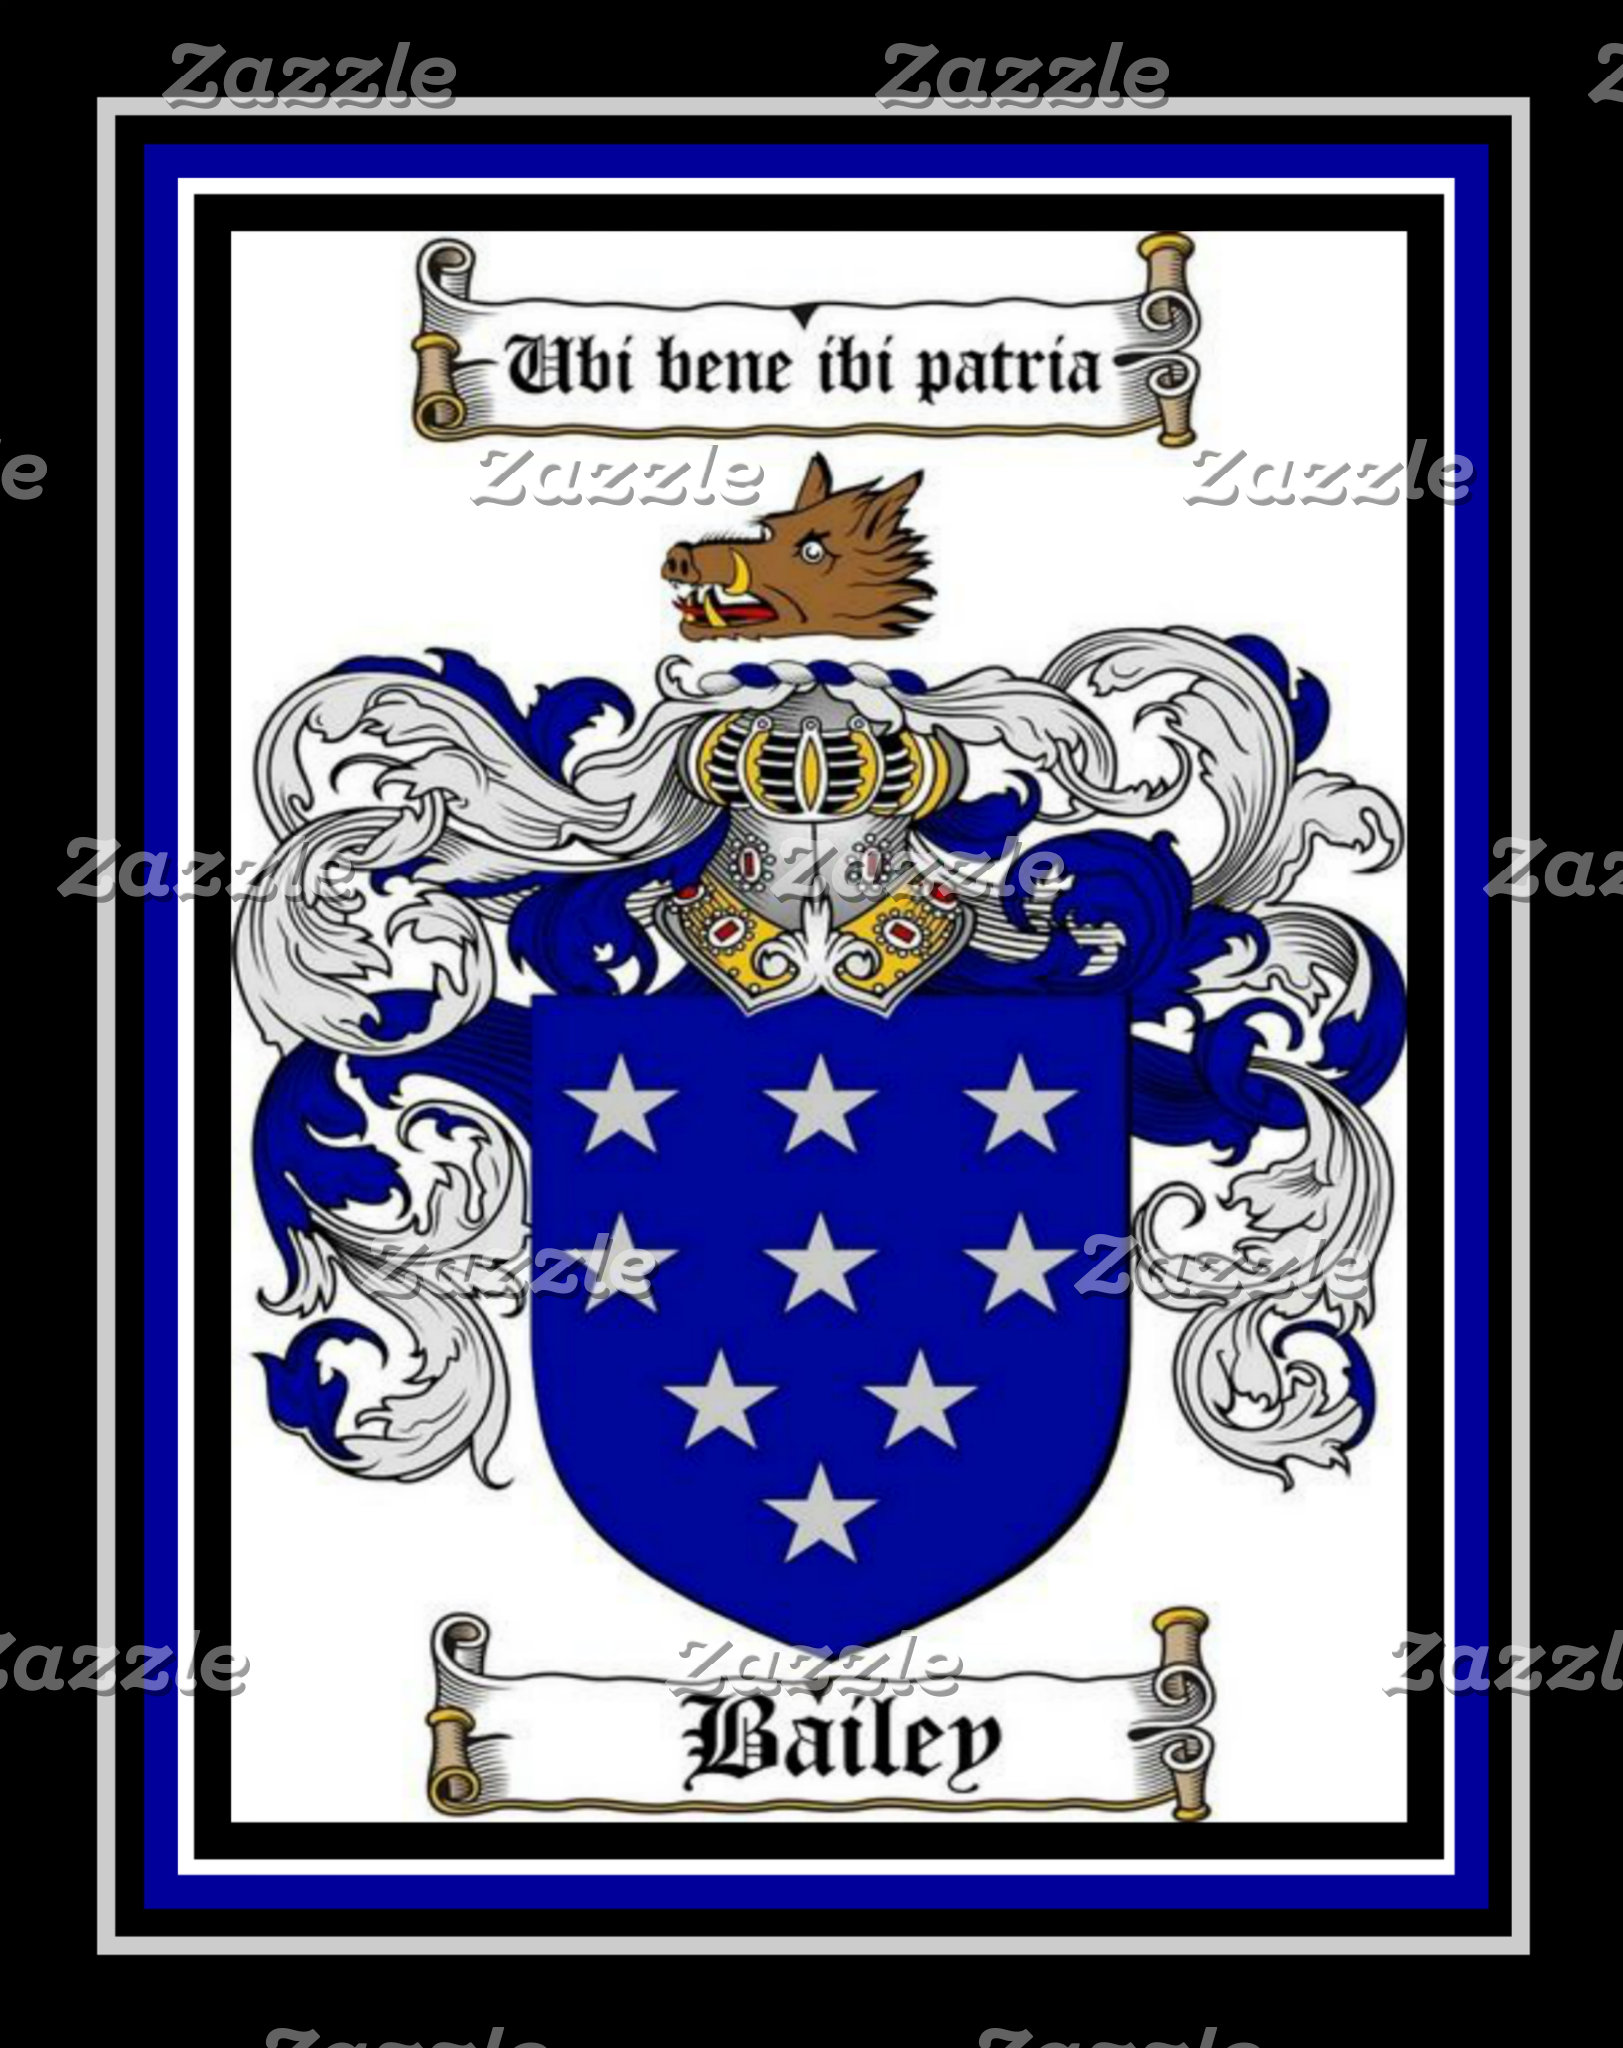 Coat of Arms & Crests